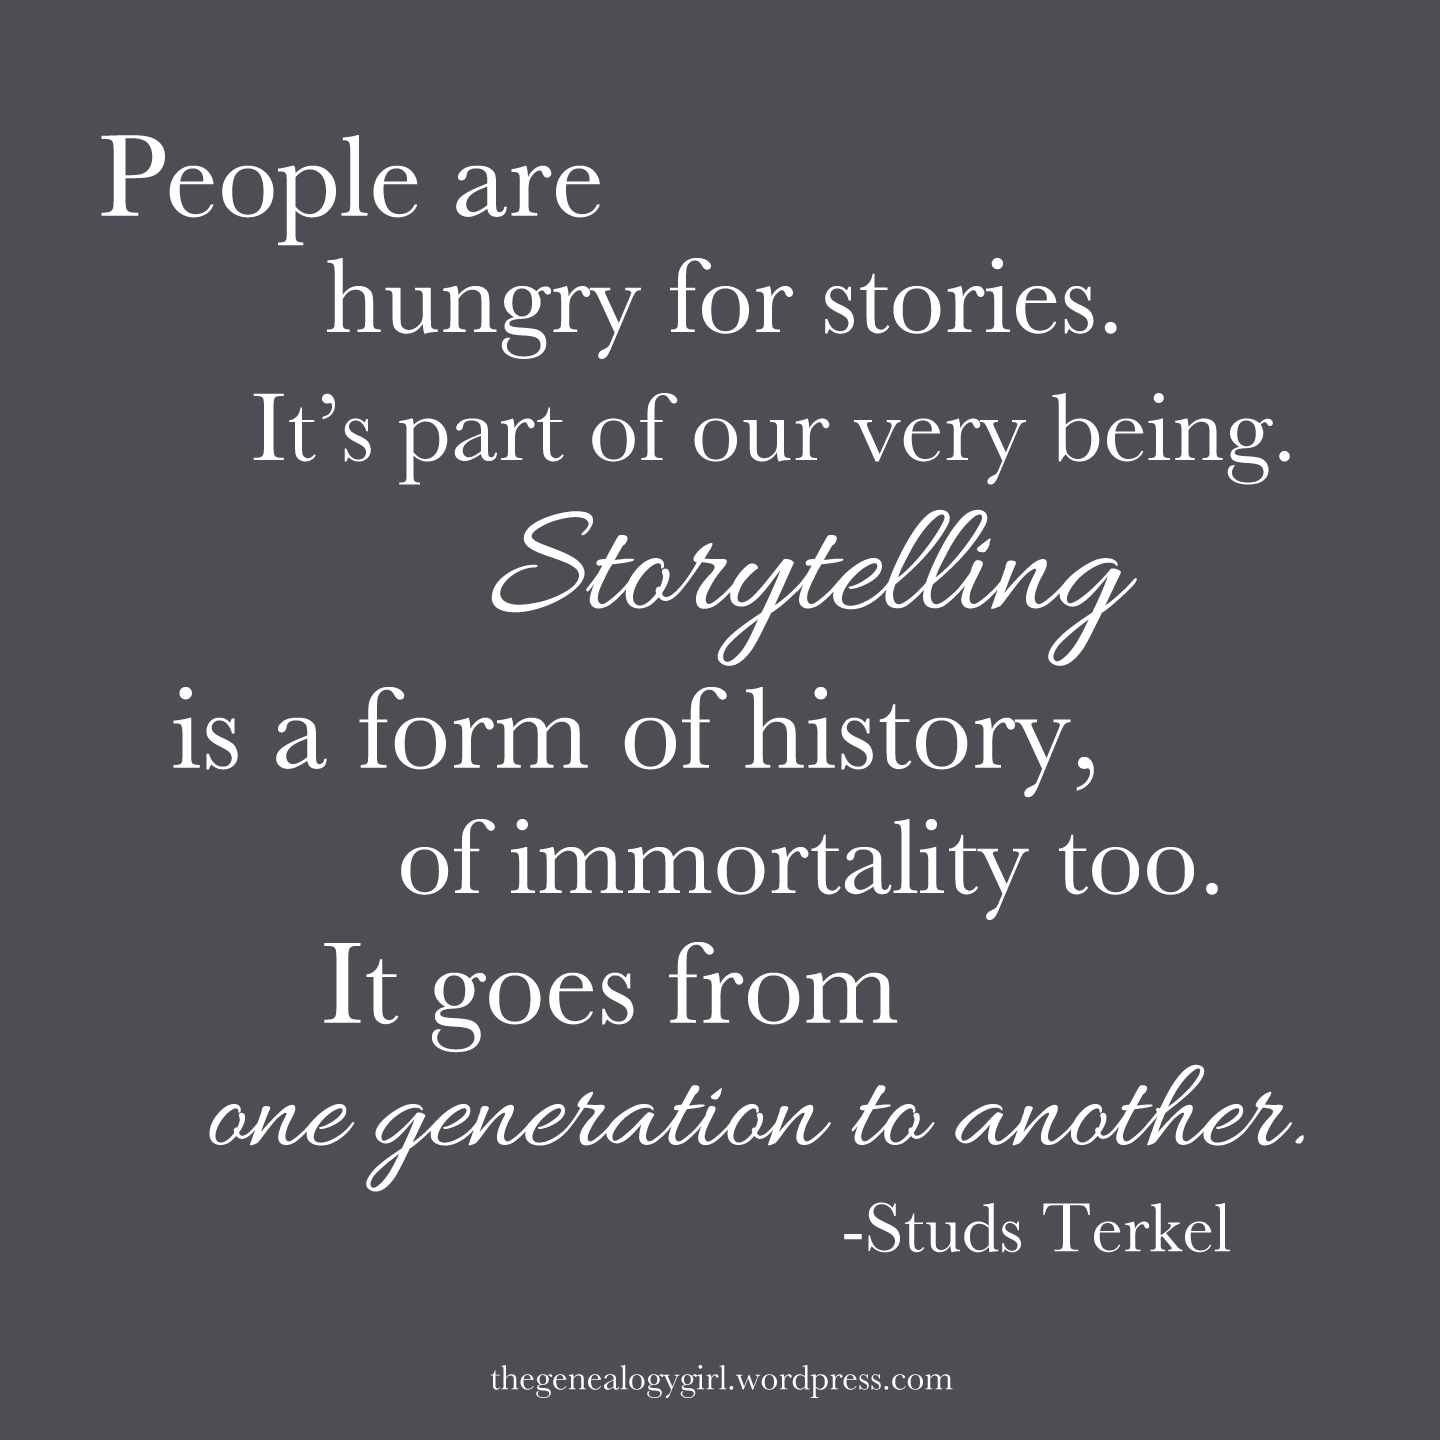 Quotes Of: Gg, Studs Terkel Quote